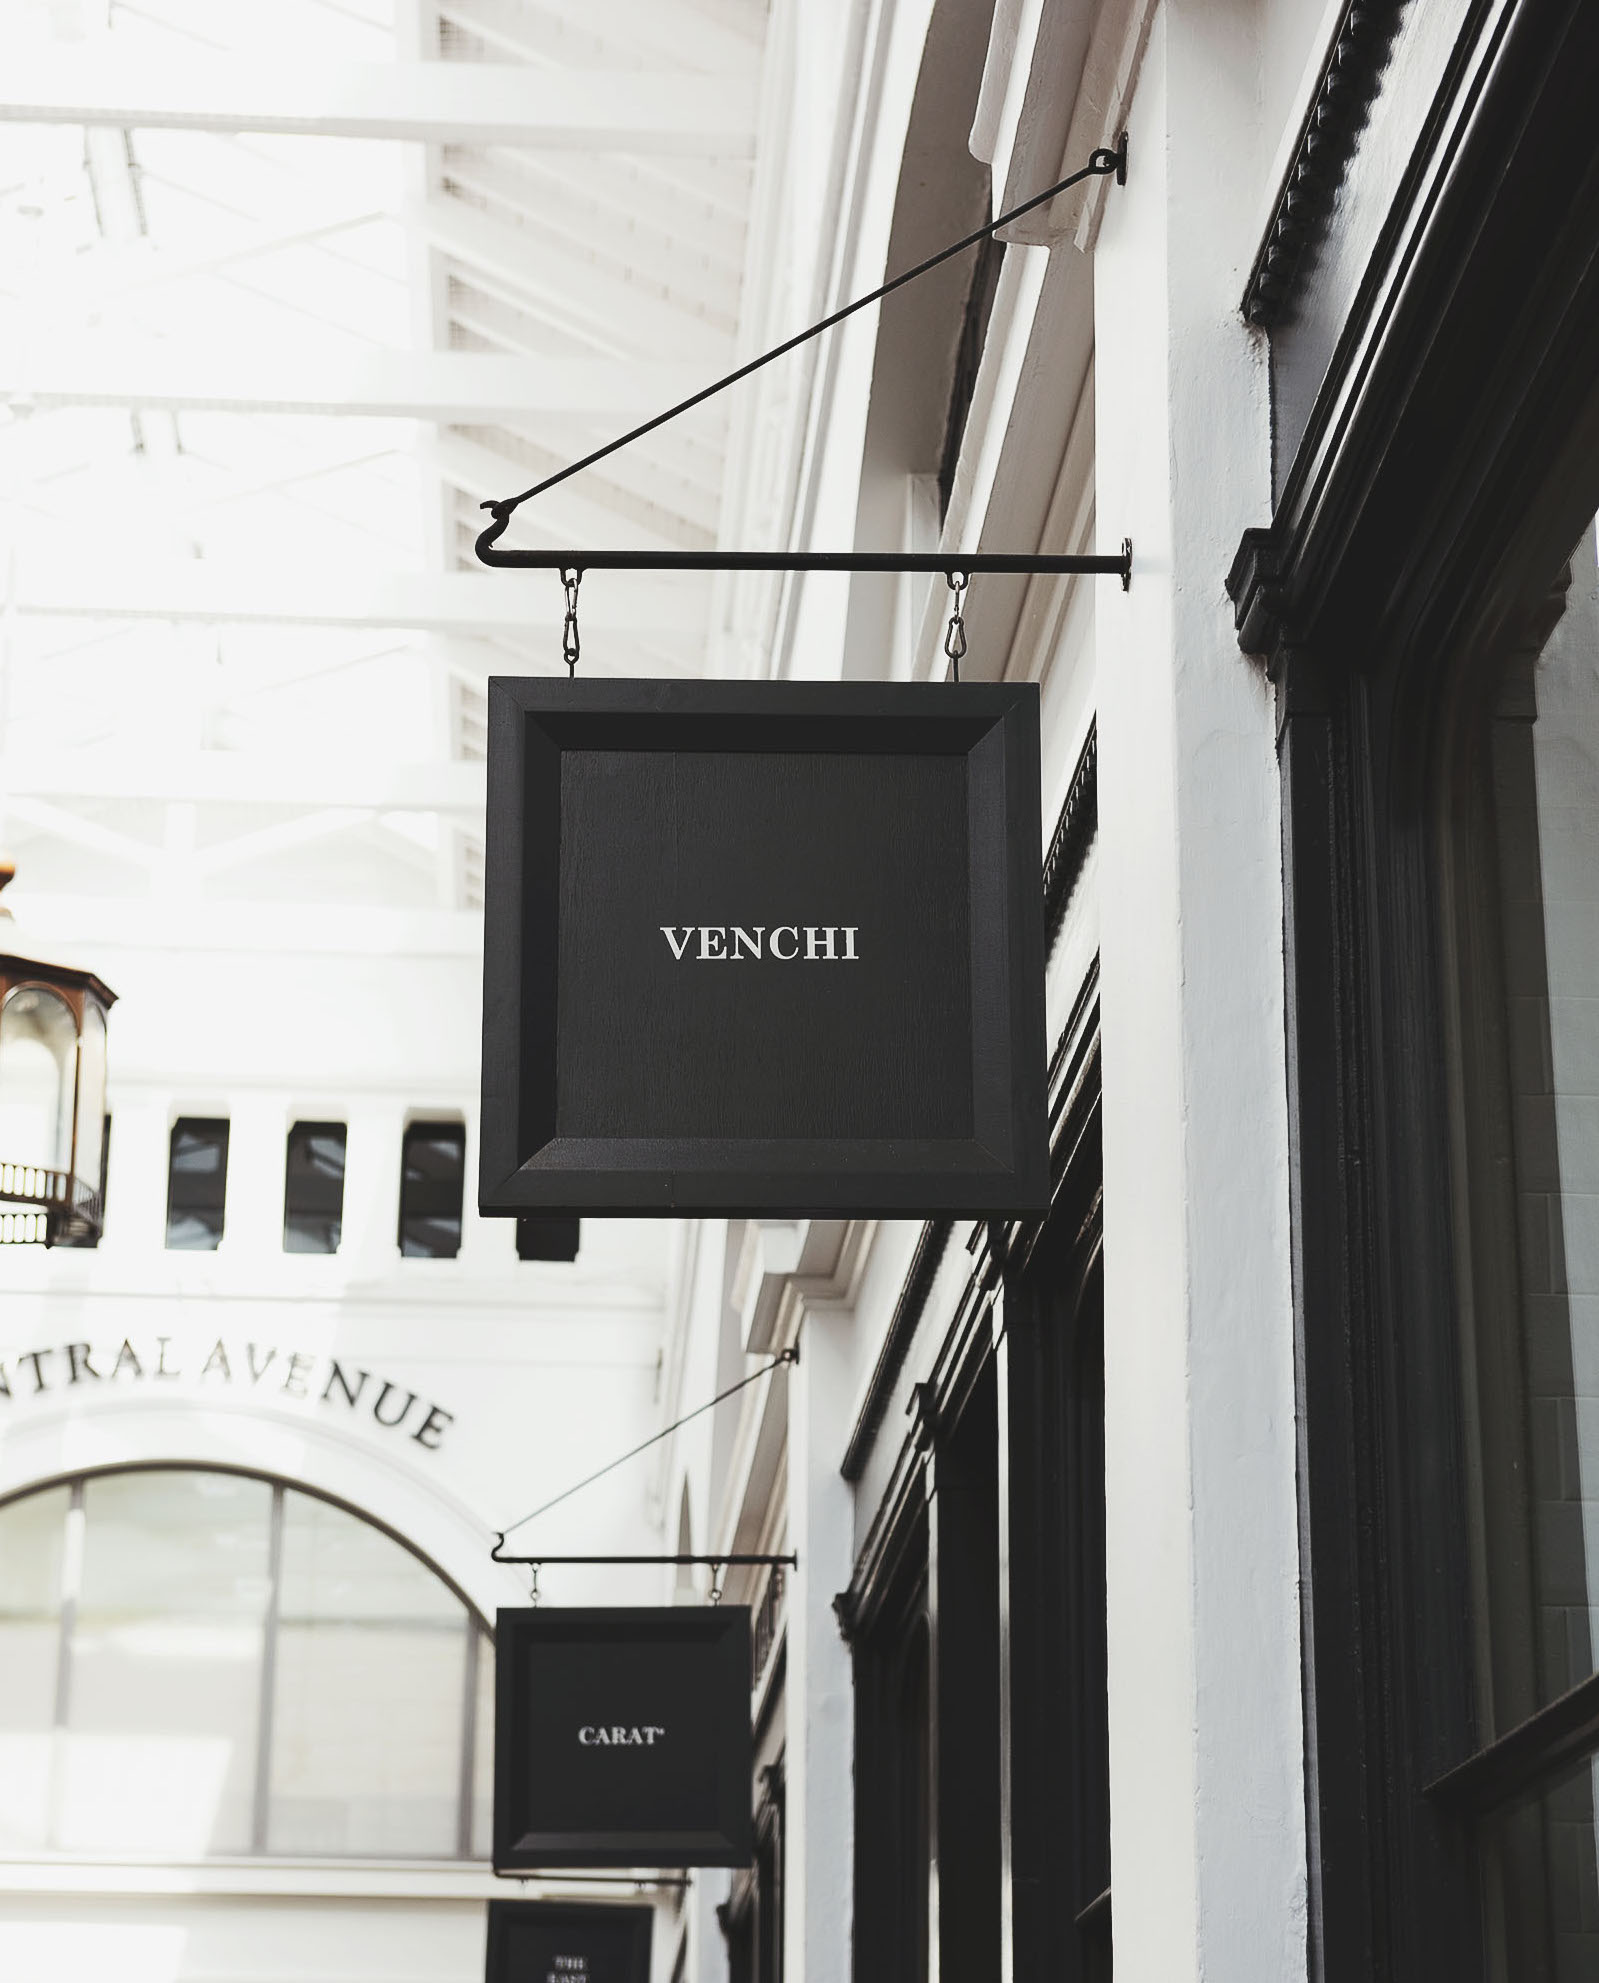 venchi gelato covent garden London united kingdom